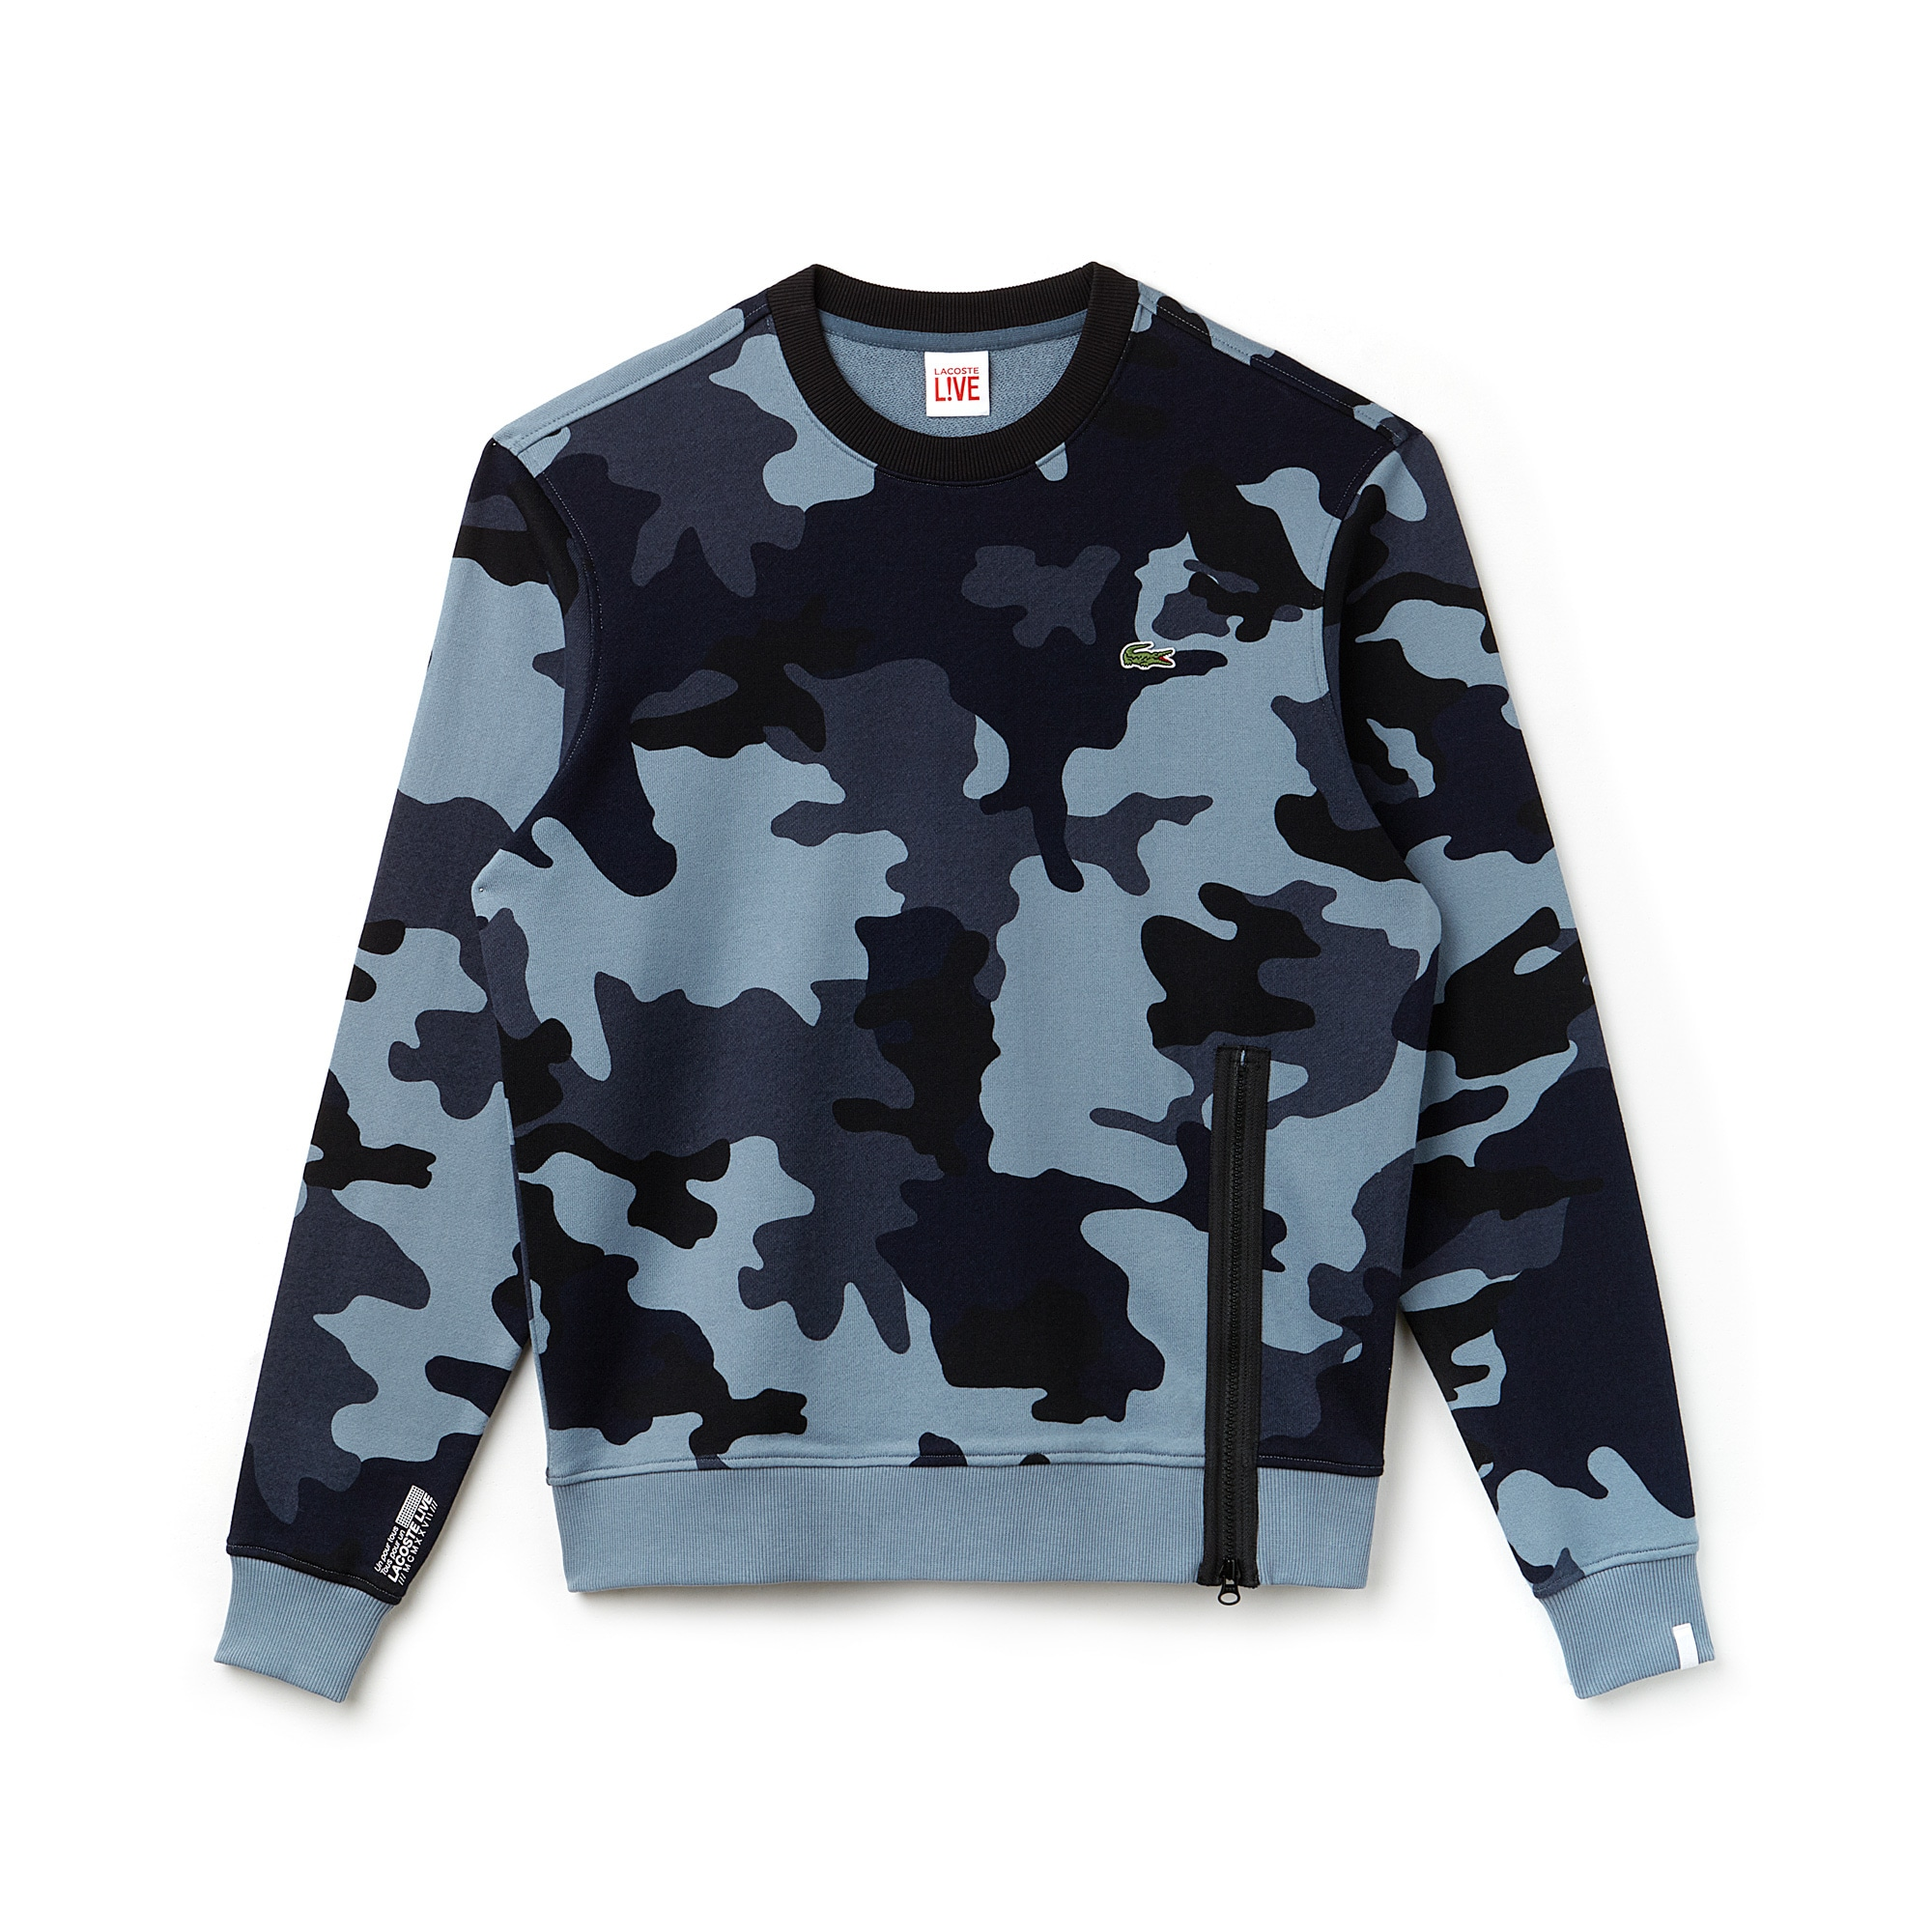 Men's LIVE Camouflage Fleece Sweatshirt